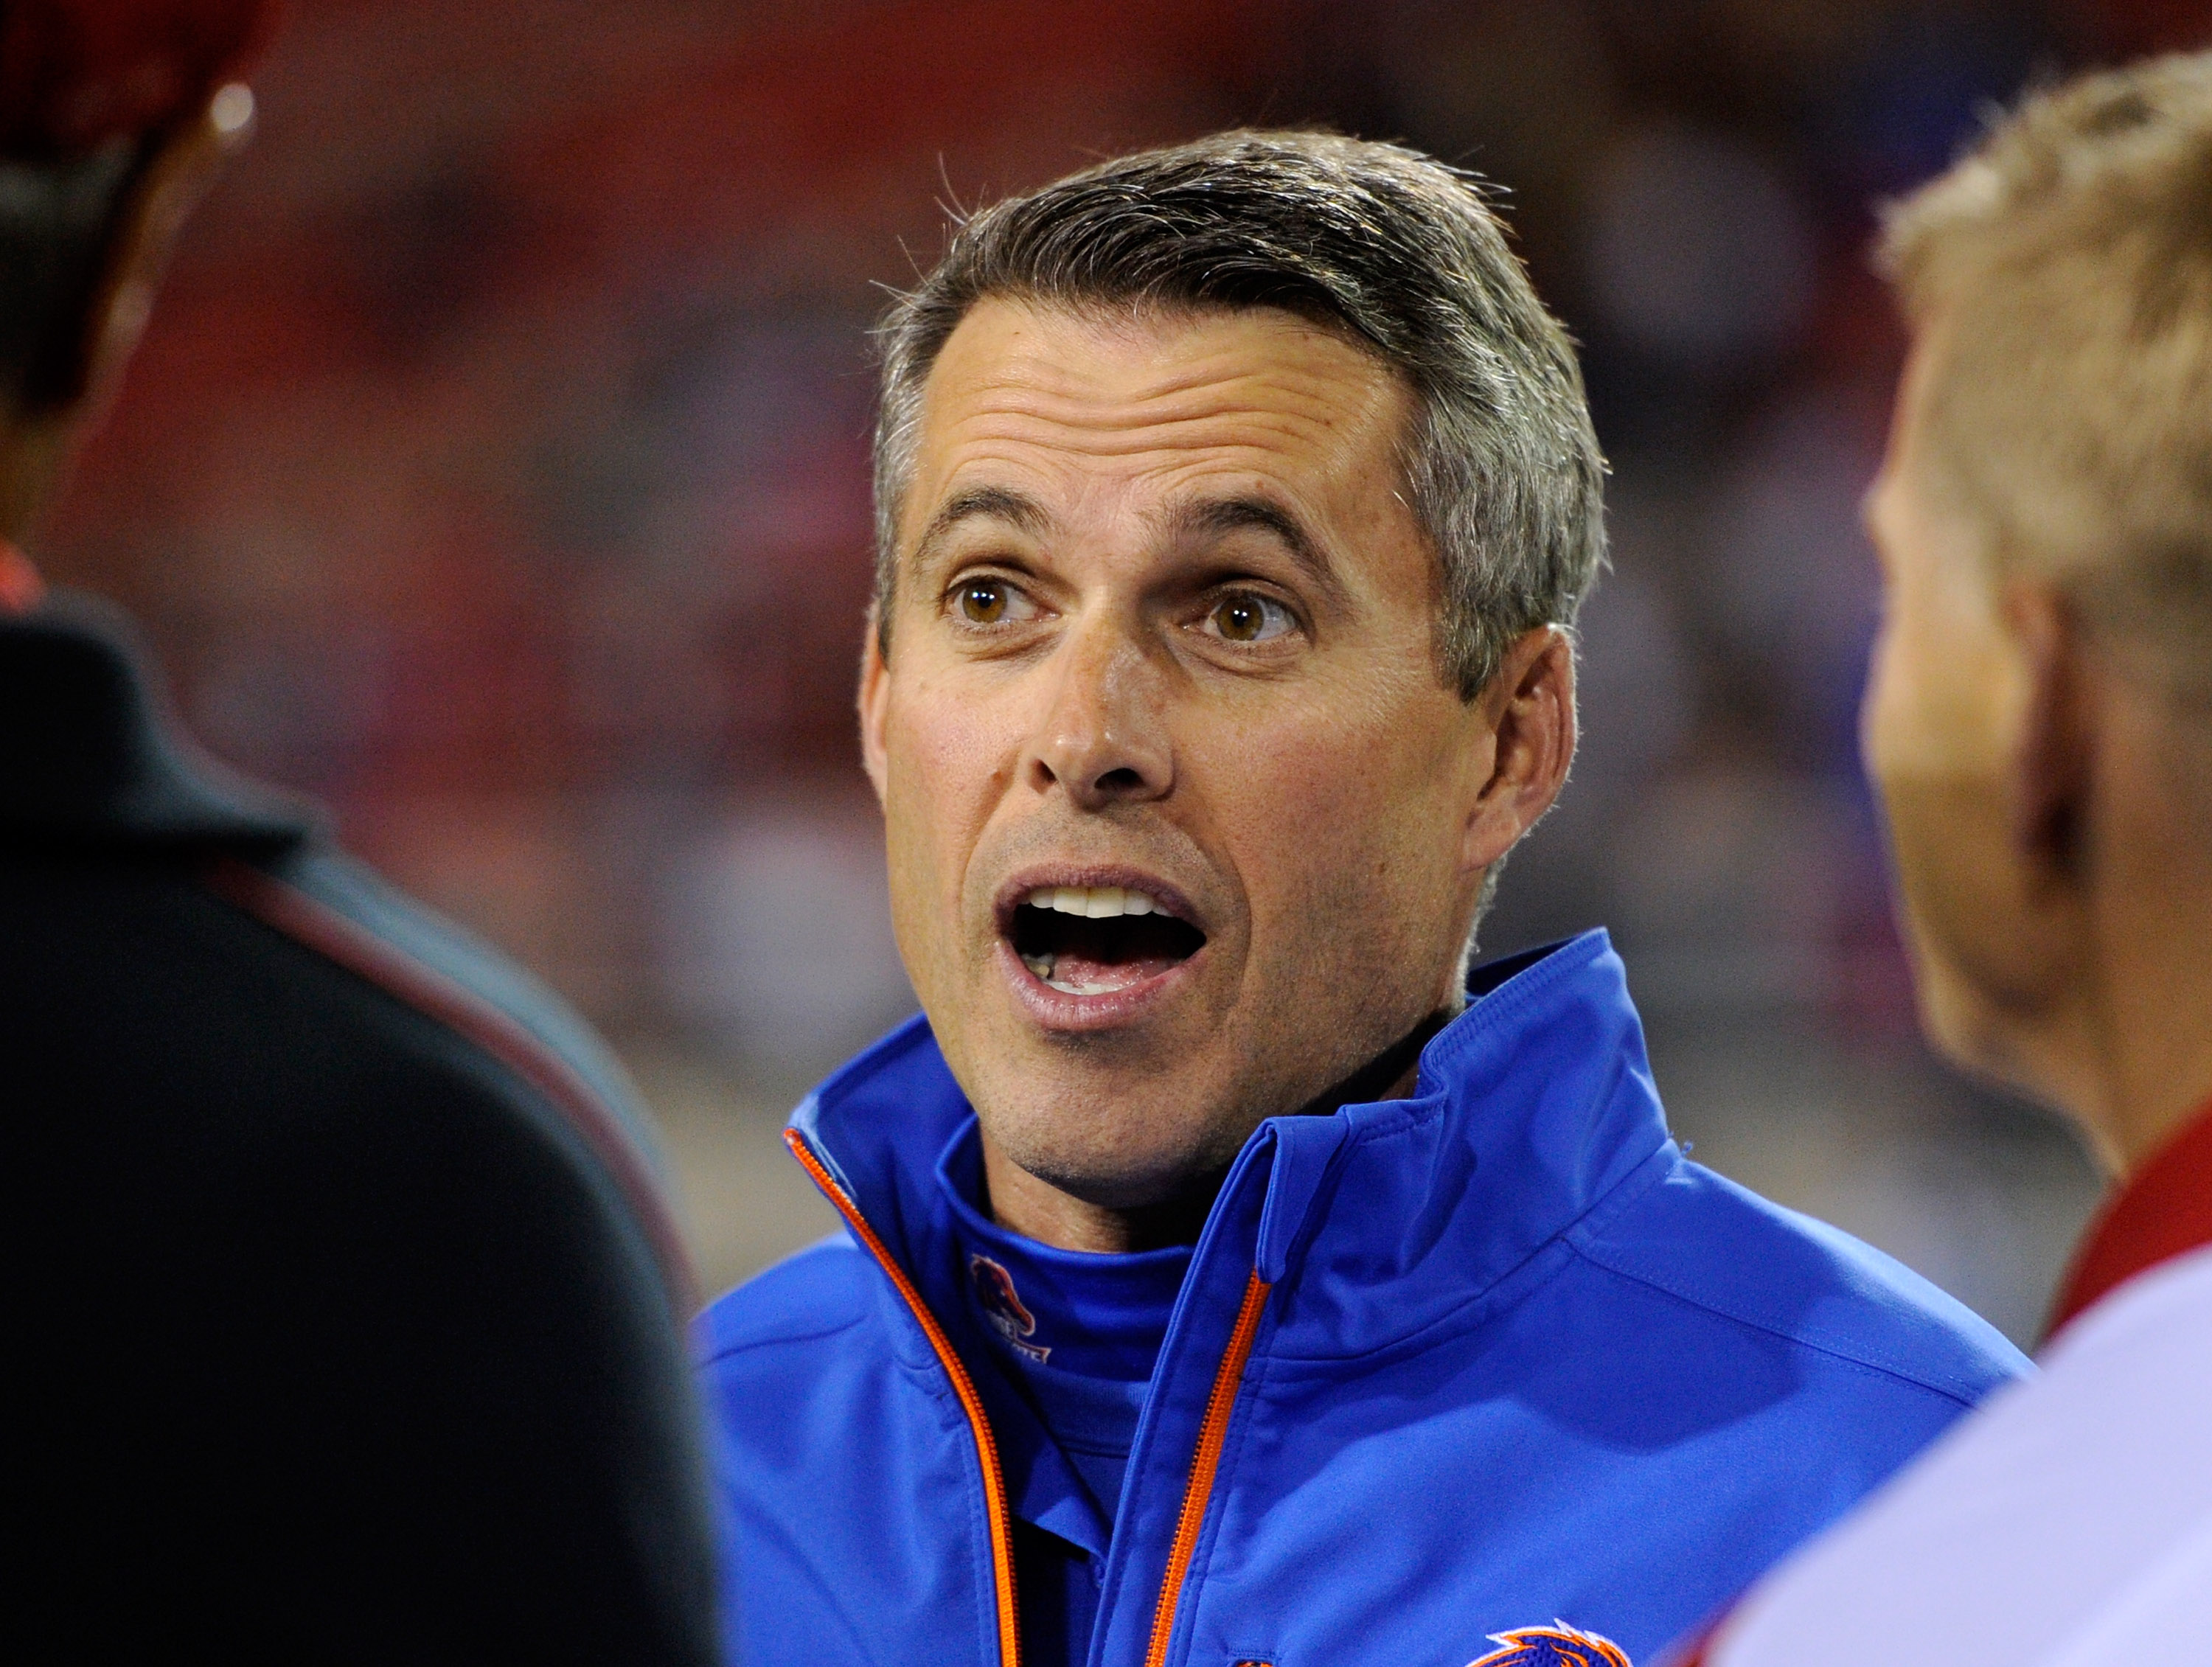 Chris Petersen has a 50-3 record at Boise State the past four years. (Getty Images)